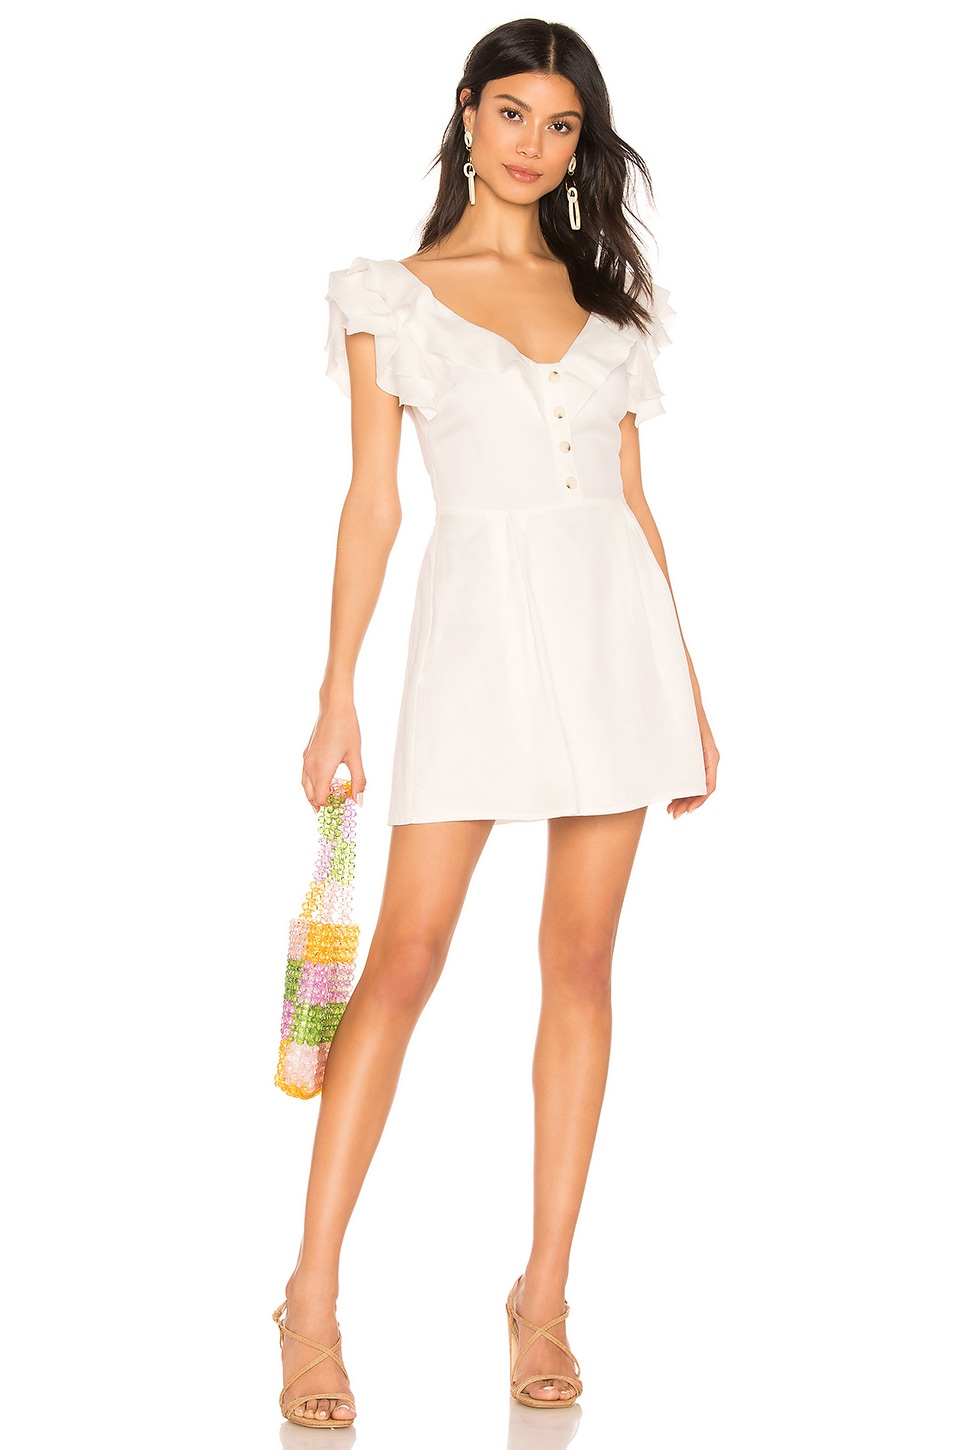 Privacy Please Umber Dress in White